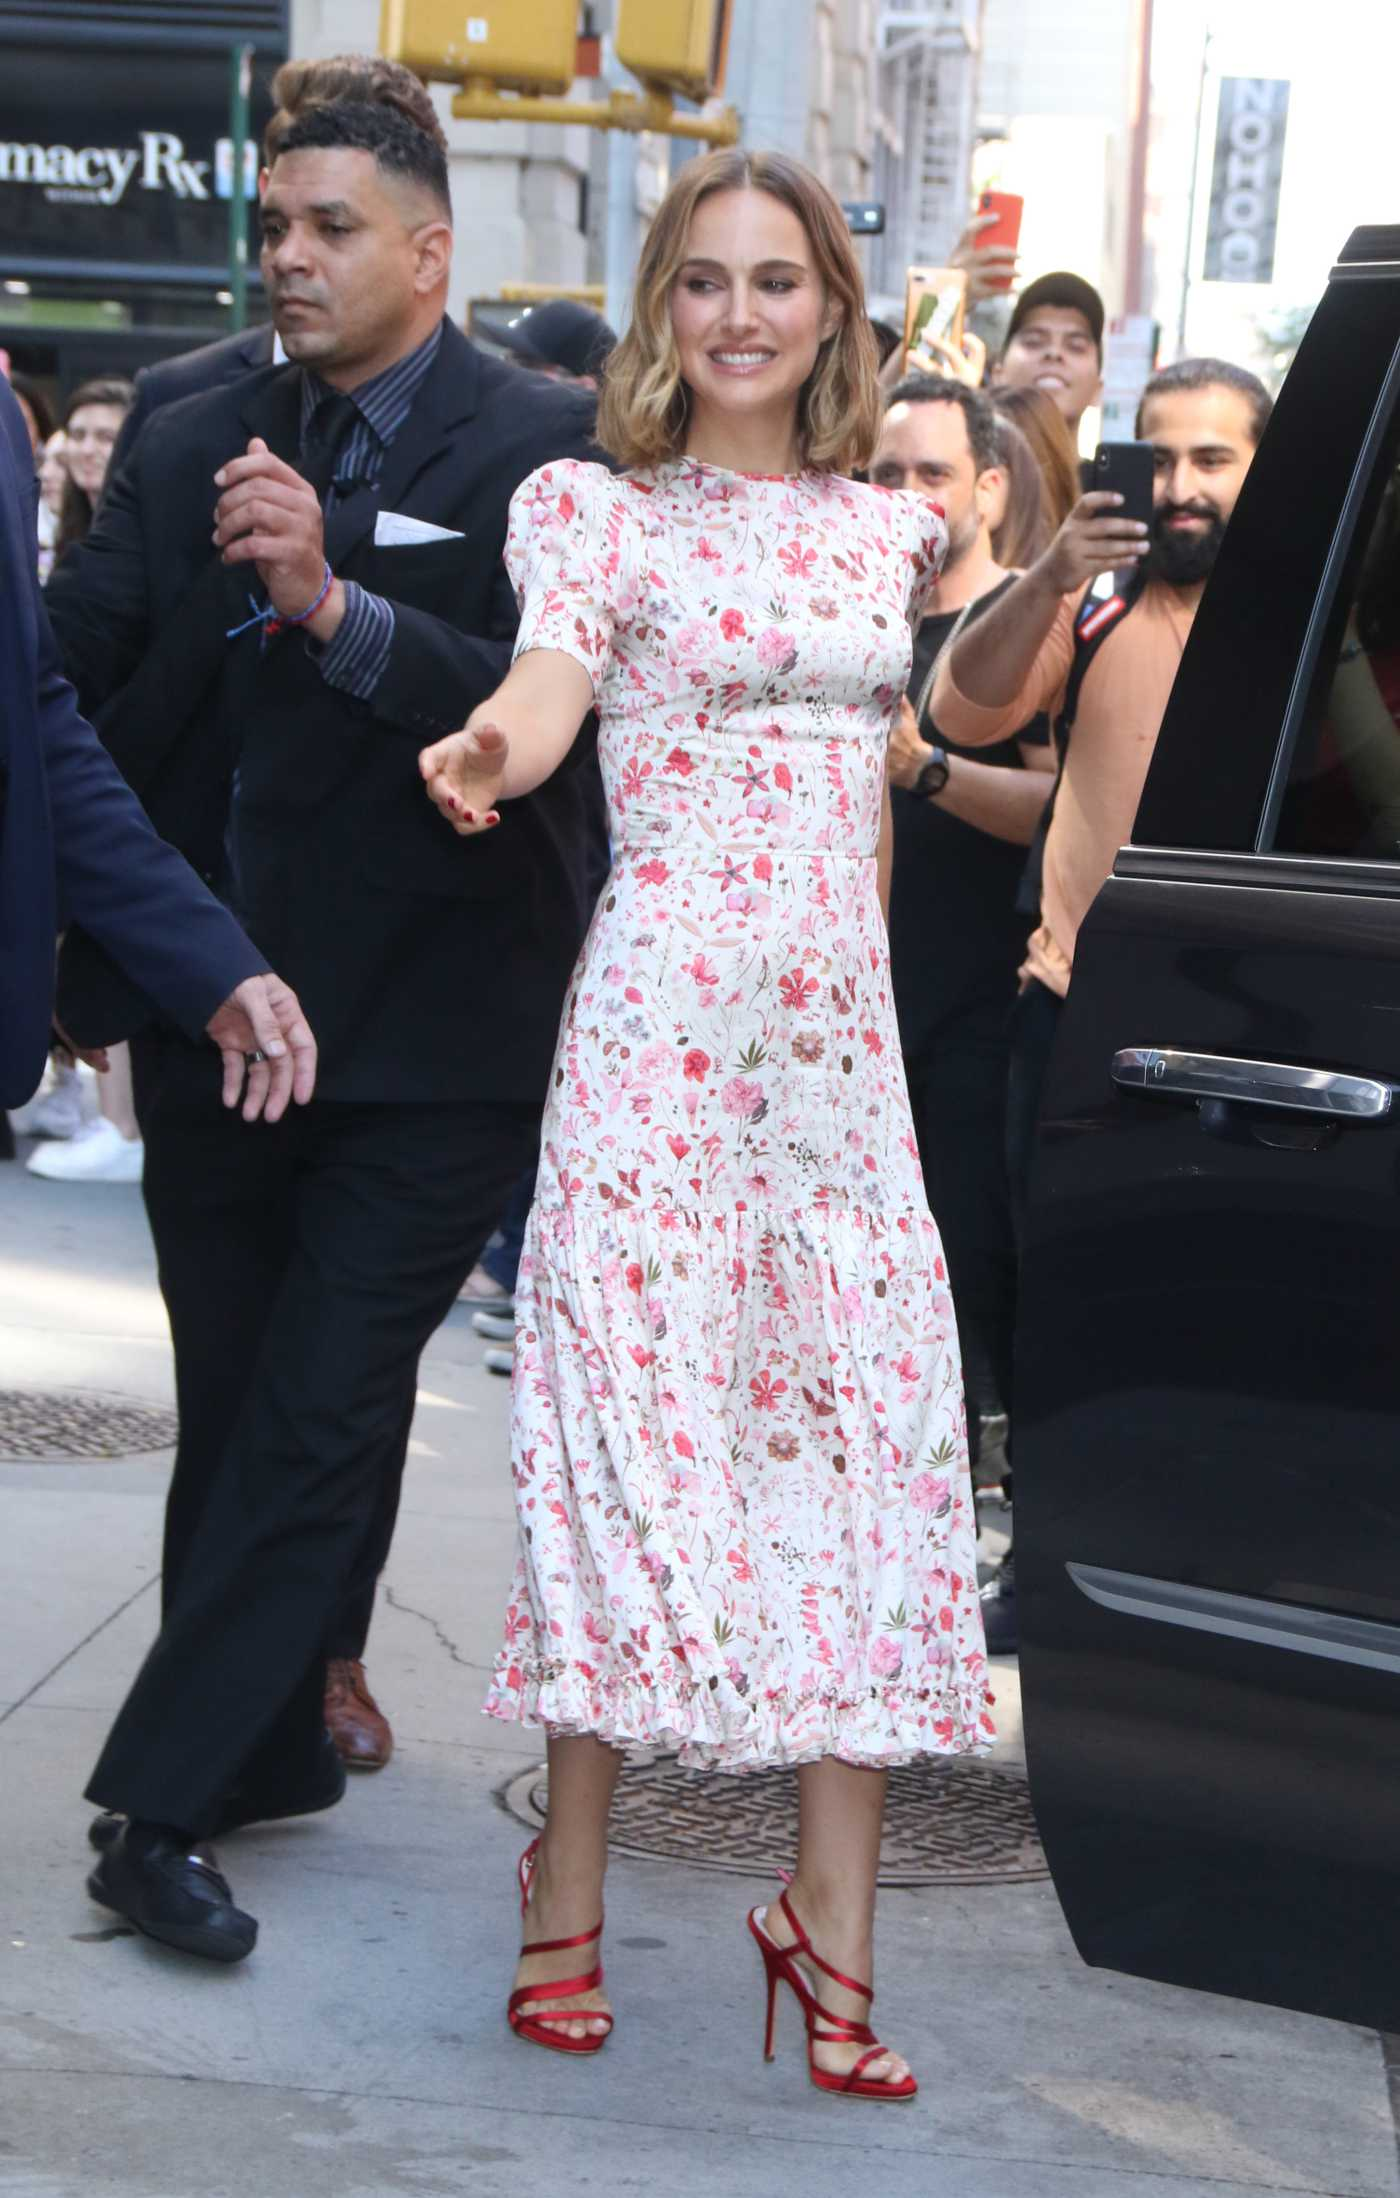 Natalie Portman in a Floral Dress Arrives at AOL Build Speaker Series in New York City 10/02/2019